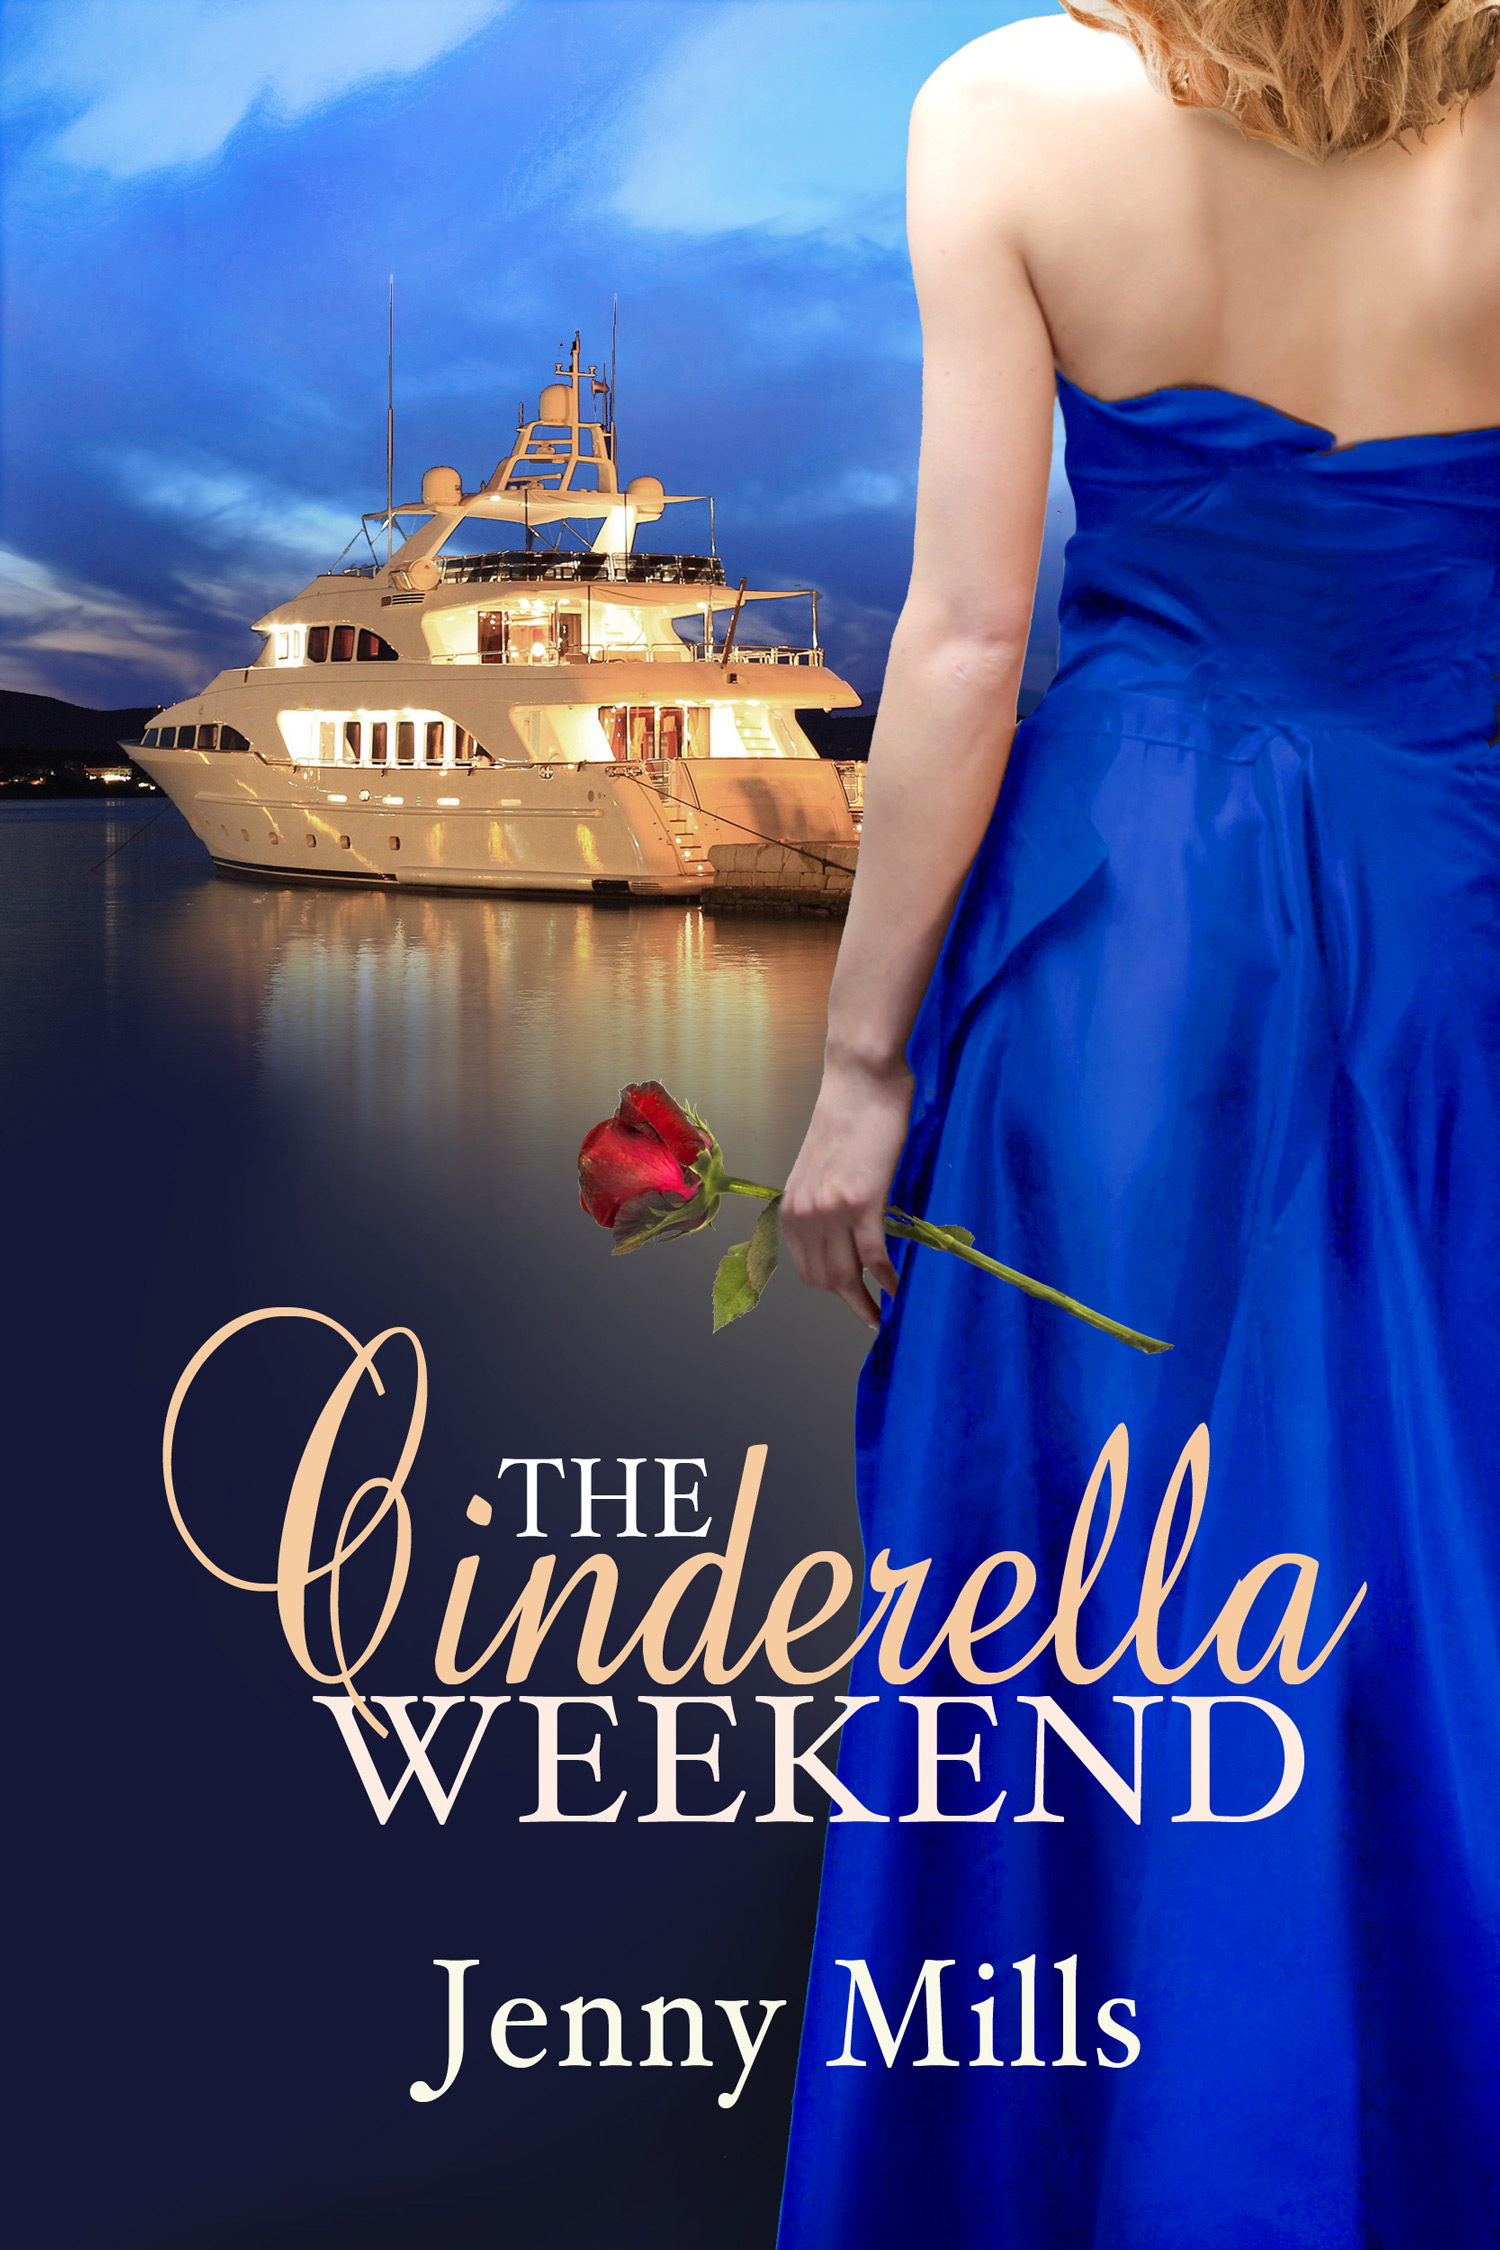 The-Cinderella-Weekend-Cover.jpg